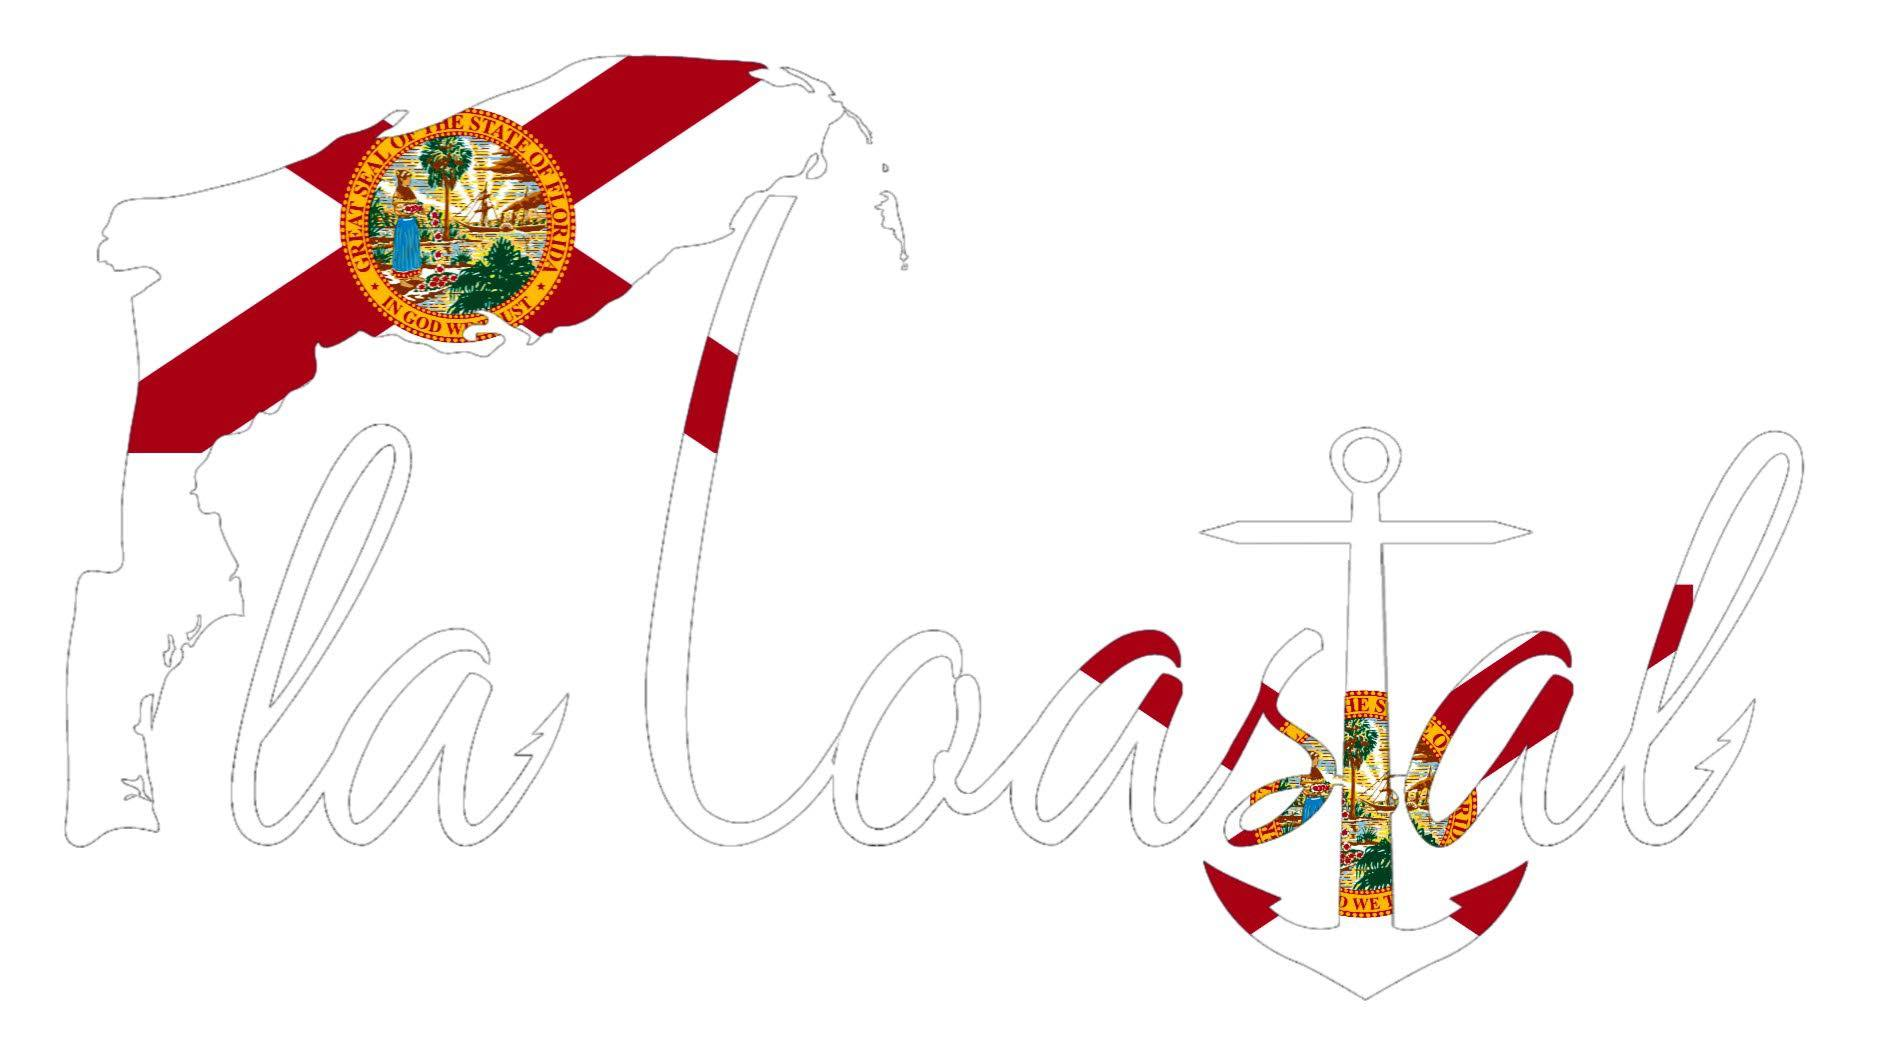 flacoastal - Florida Flag Vinyl Decal